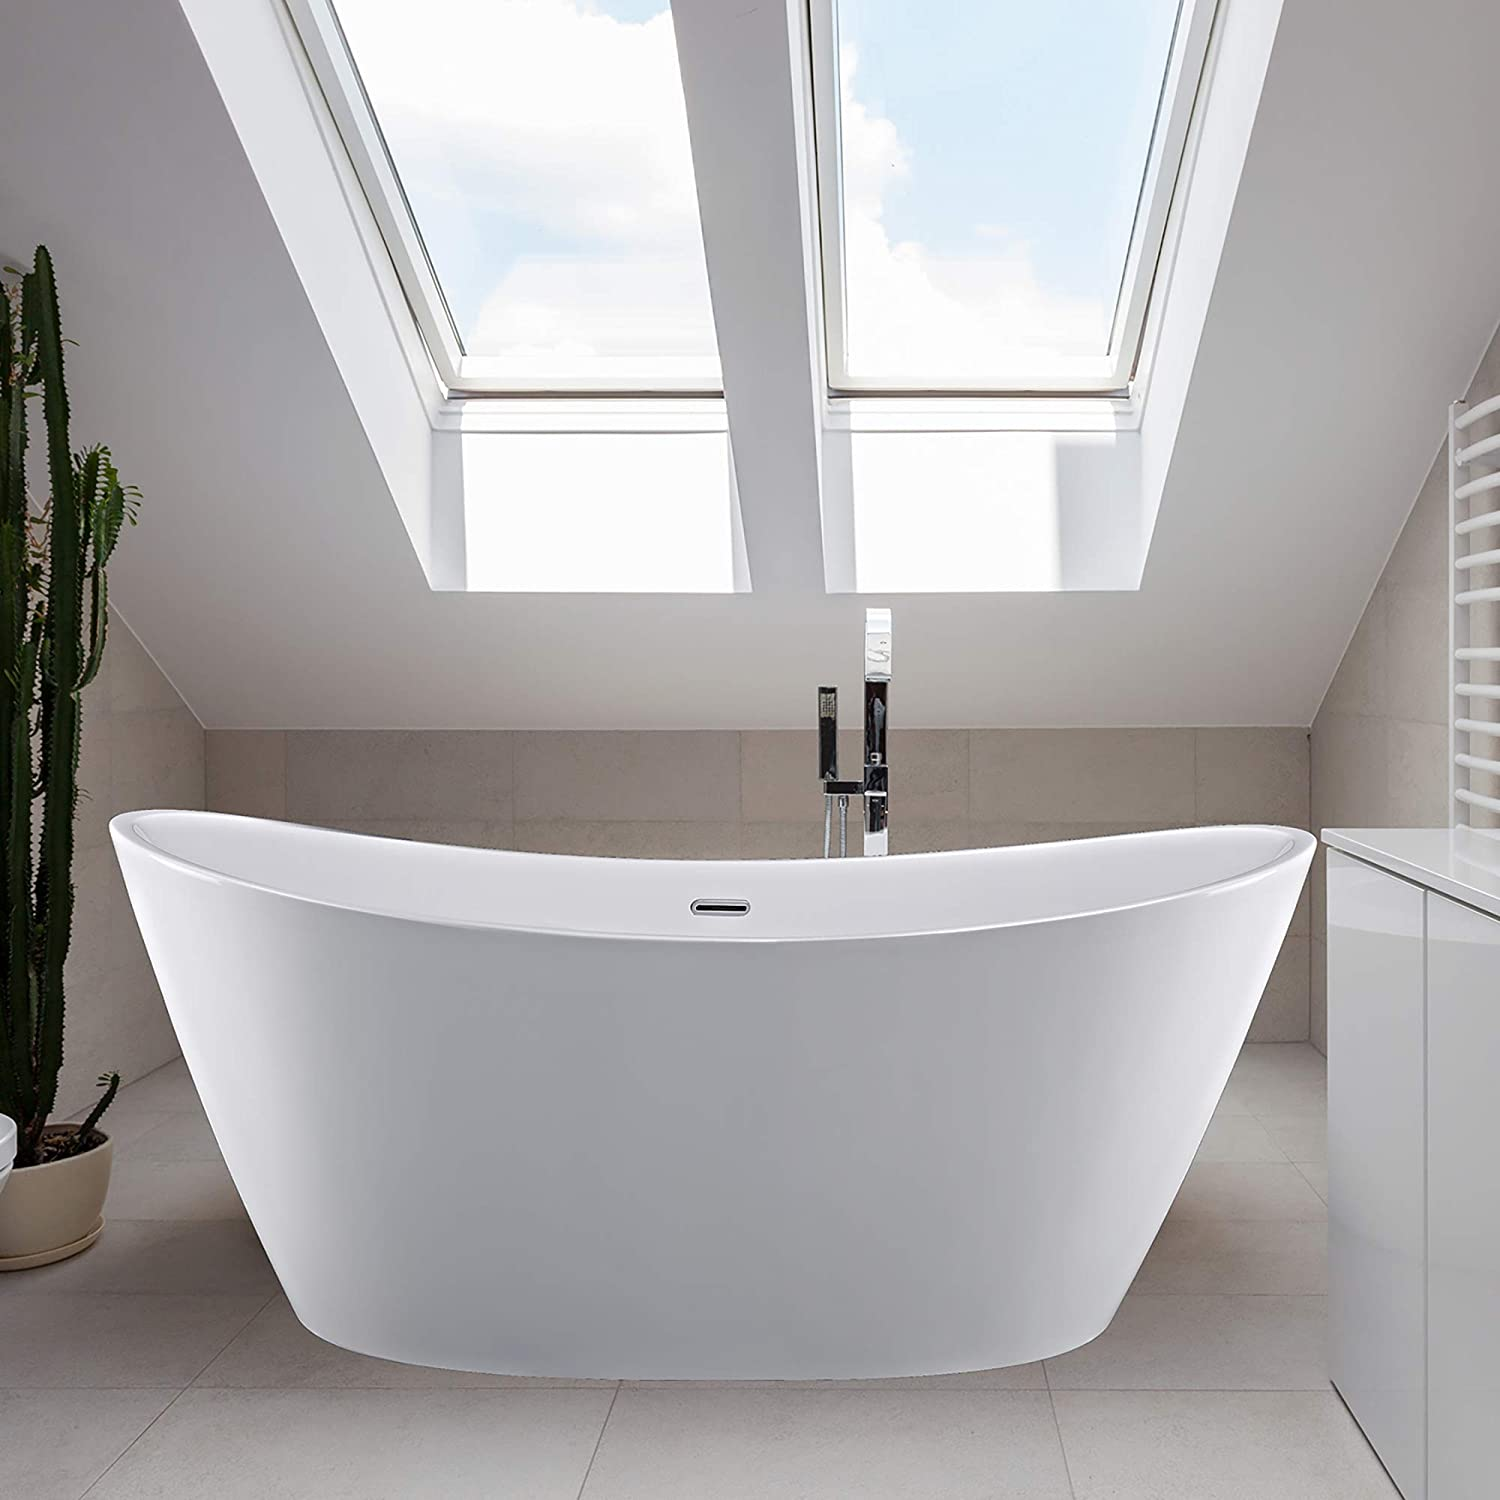 Empava Made in USA 67 Inch Luxury Freestanding Bathtub Acrylic Soaking SPA Tub Contemporary Design with Brushed Nickel Overflow and Drain 60 Gallon, SRT1, White